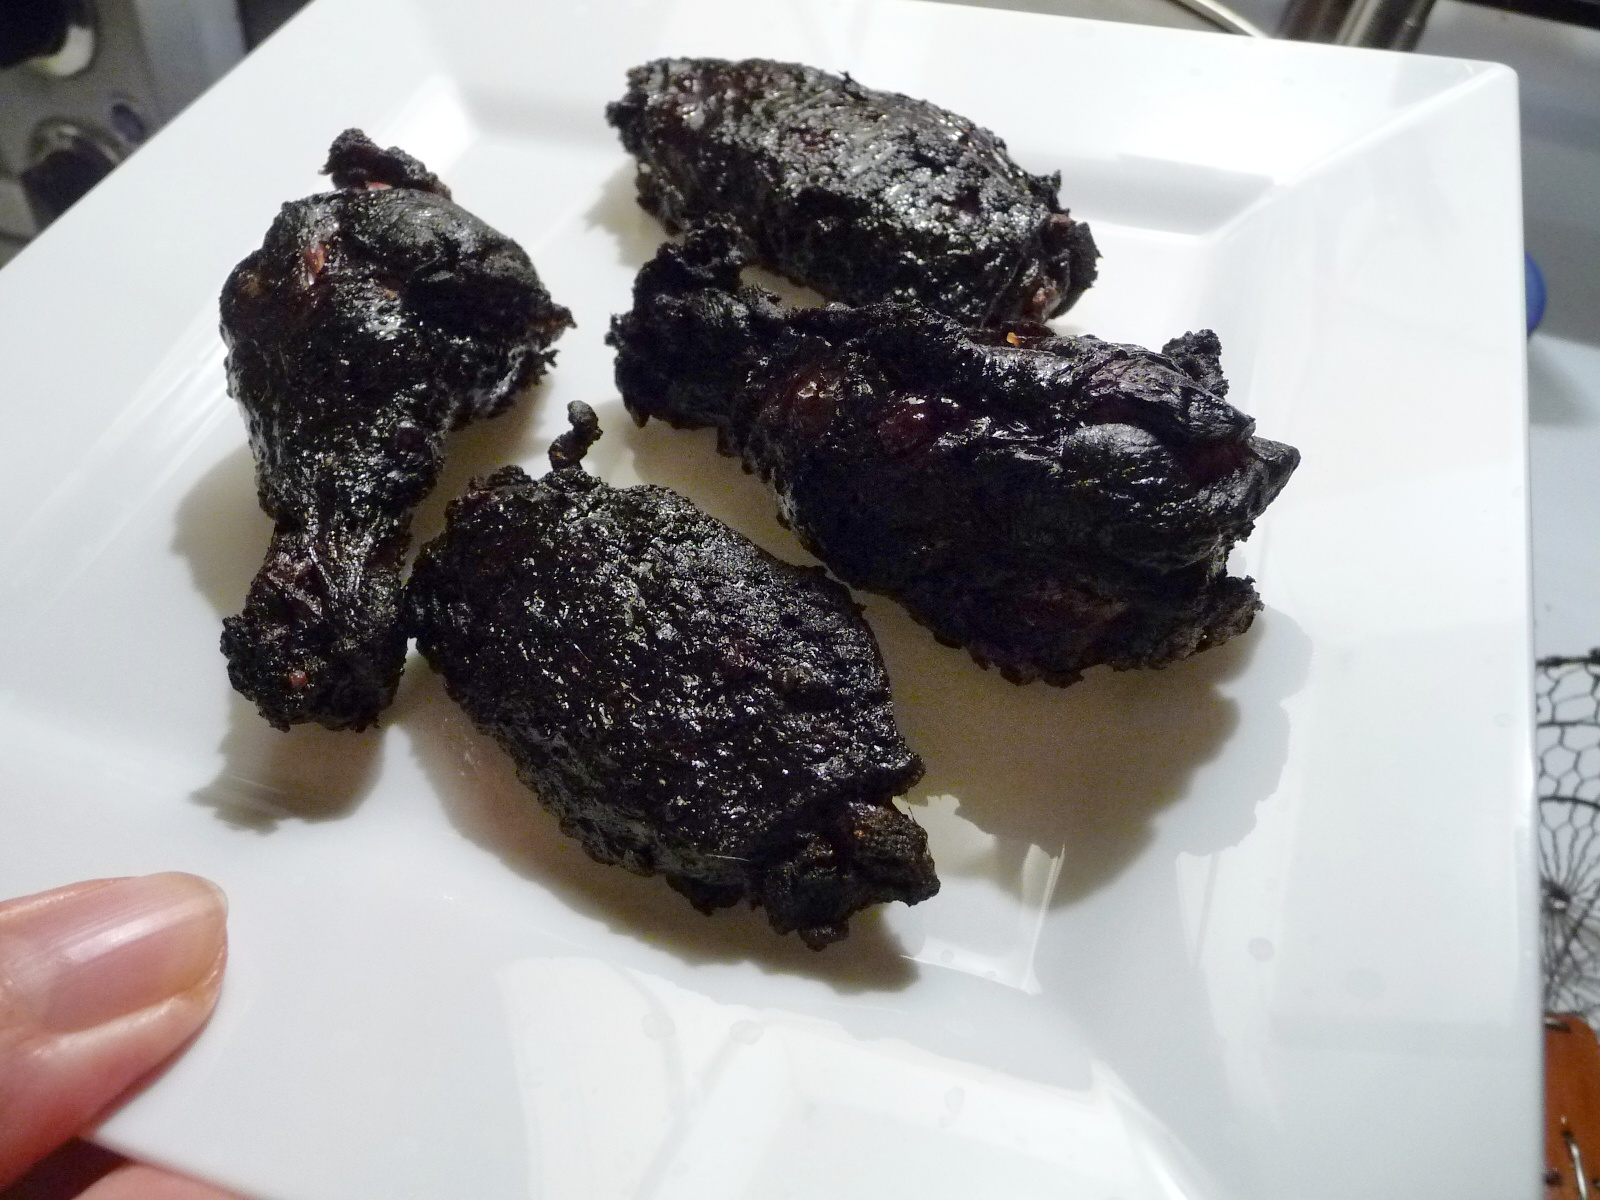 coal black wings after frying - a blank canvas